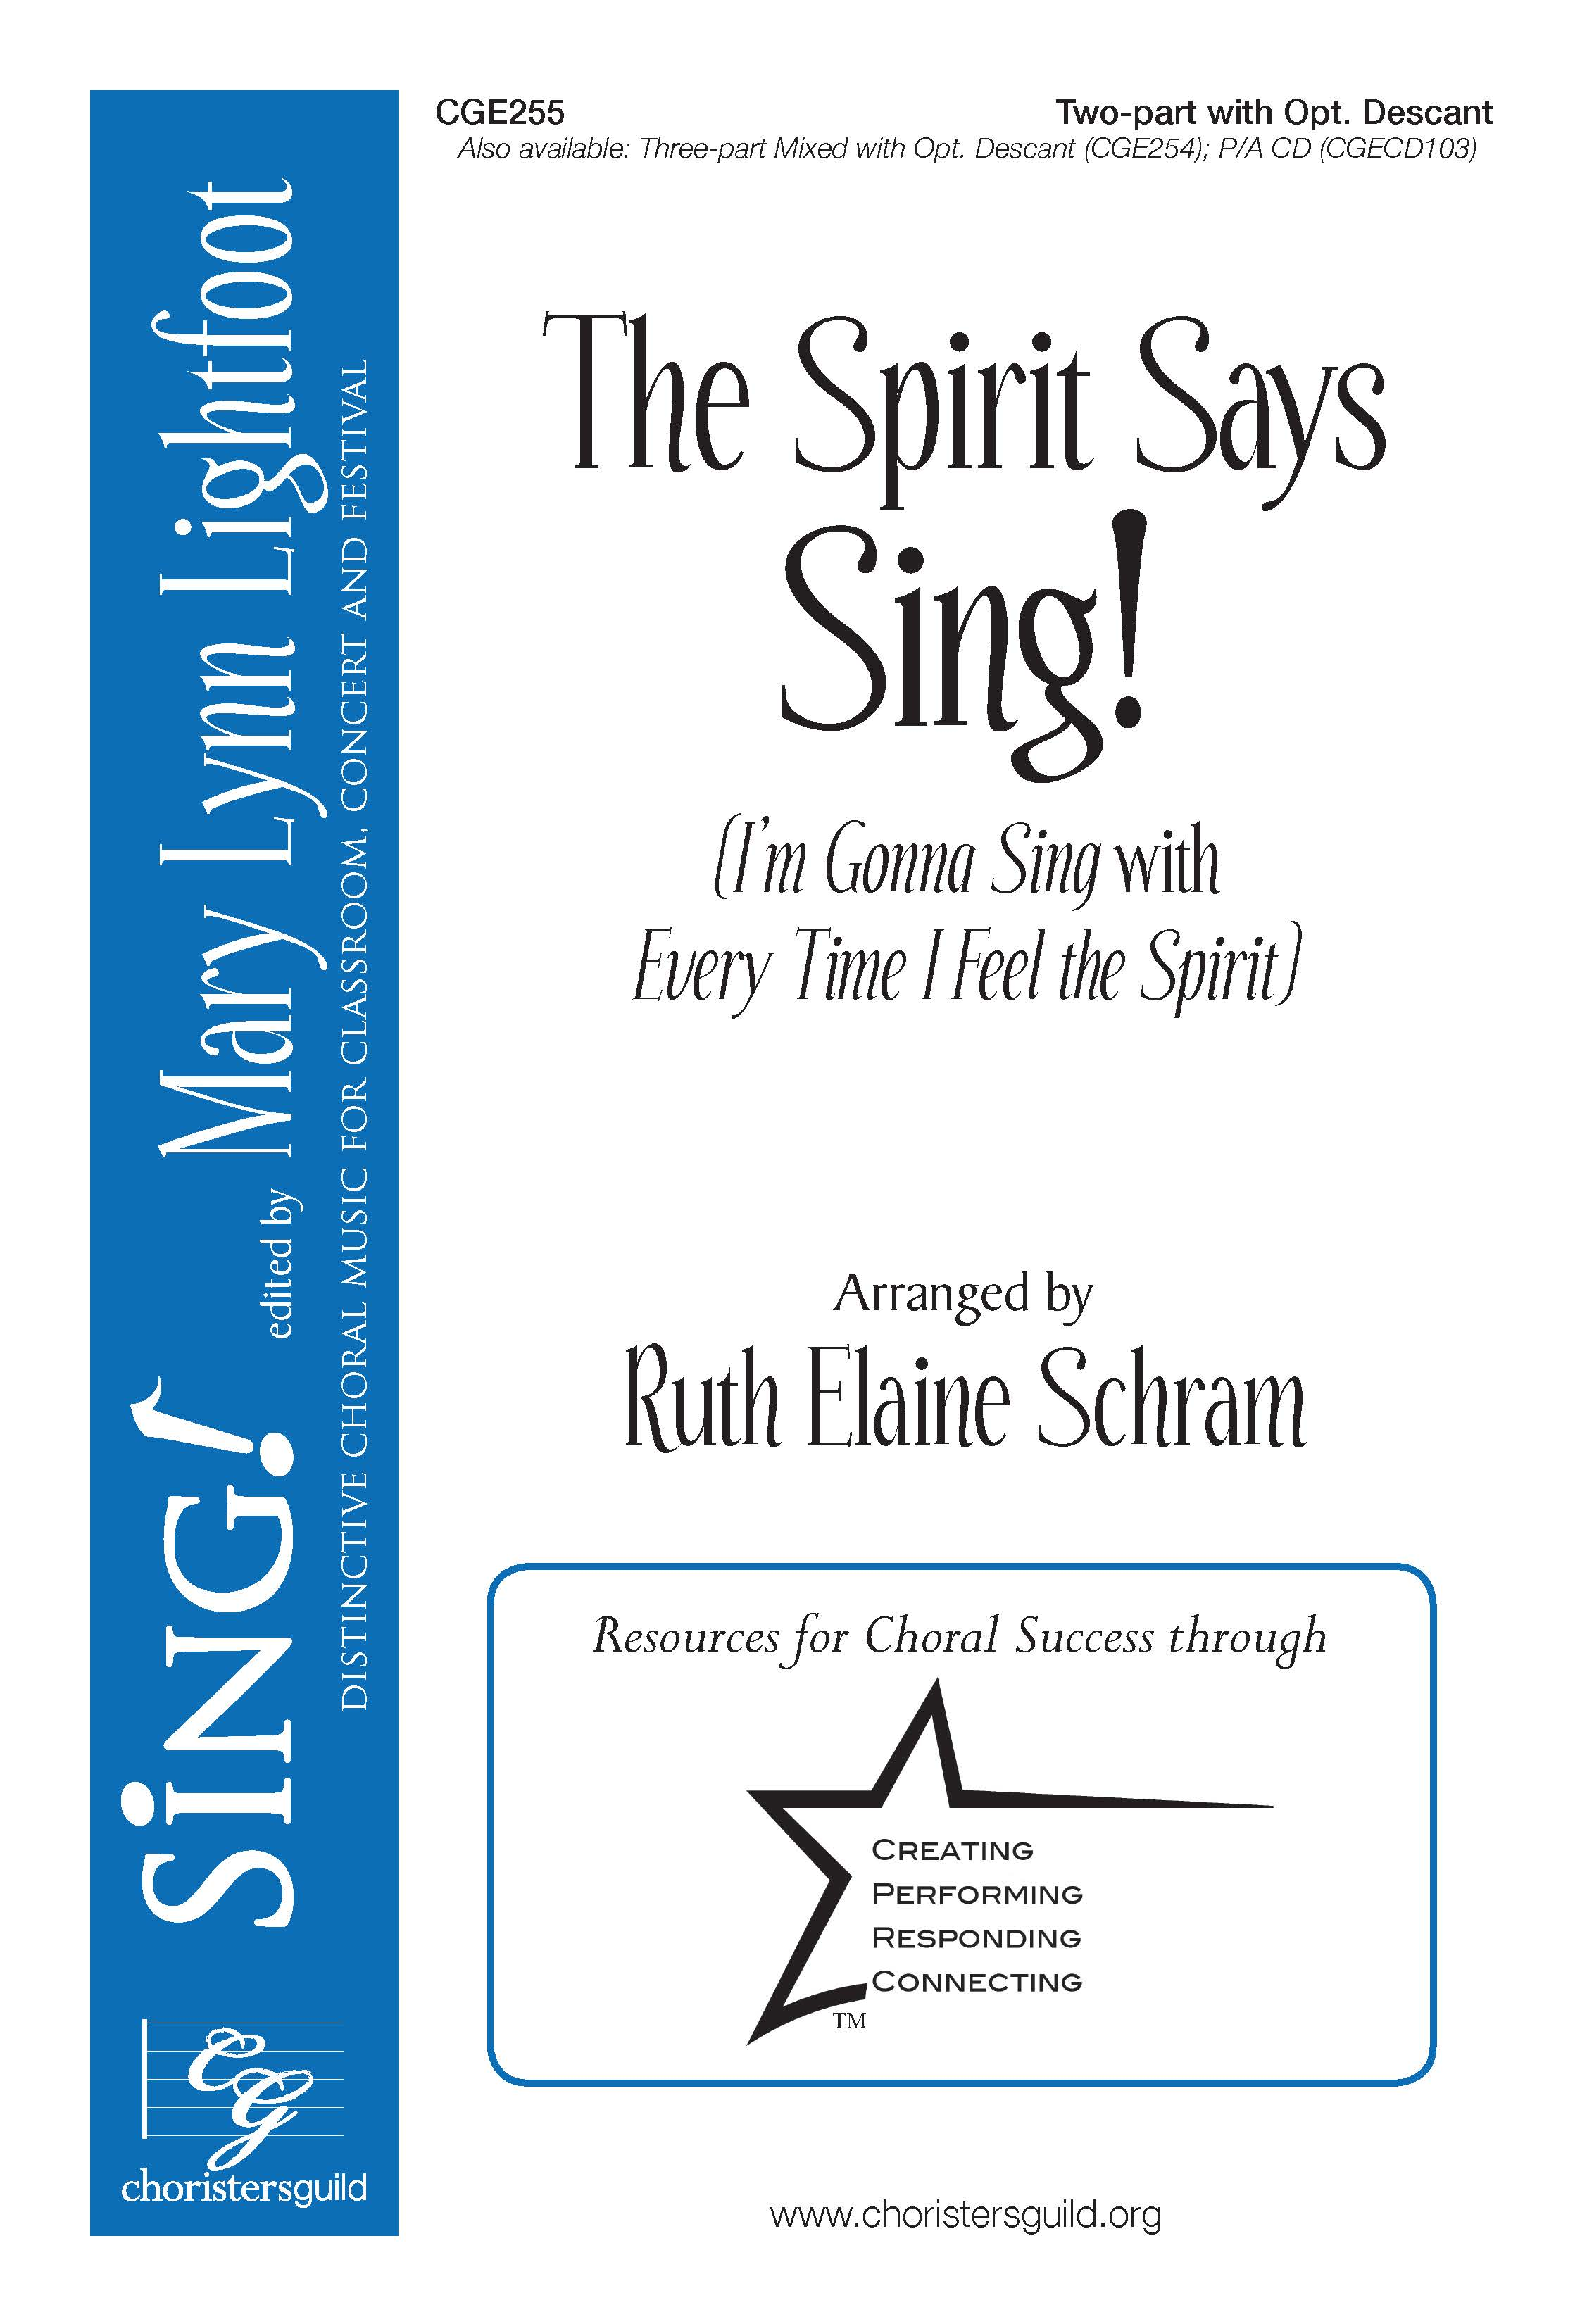 The Spirit Says Sing! Two-part